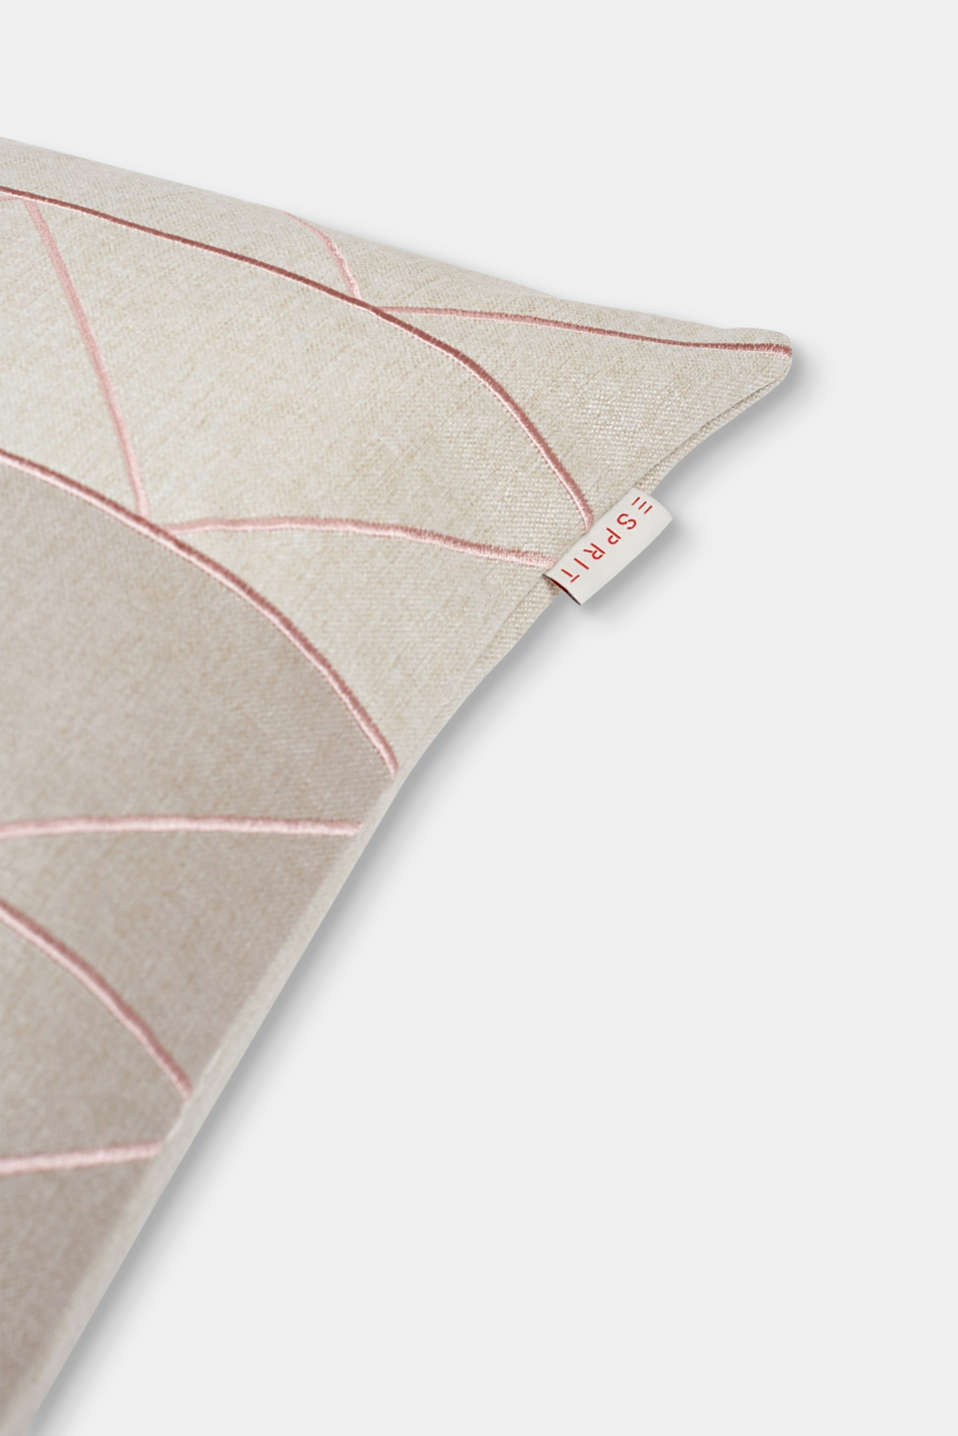 Cushions deco, BEIGE/ROSE, detail image number 1